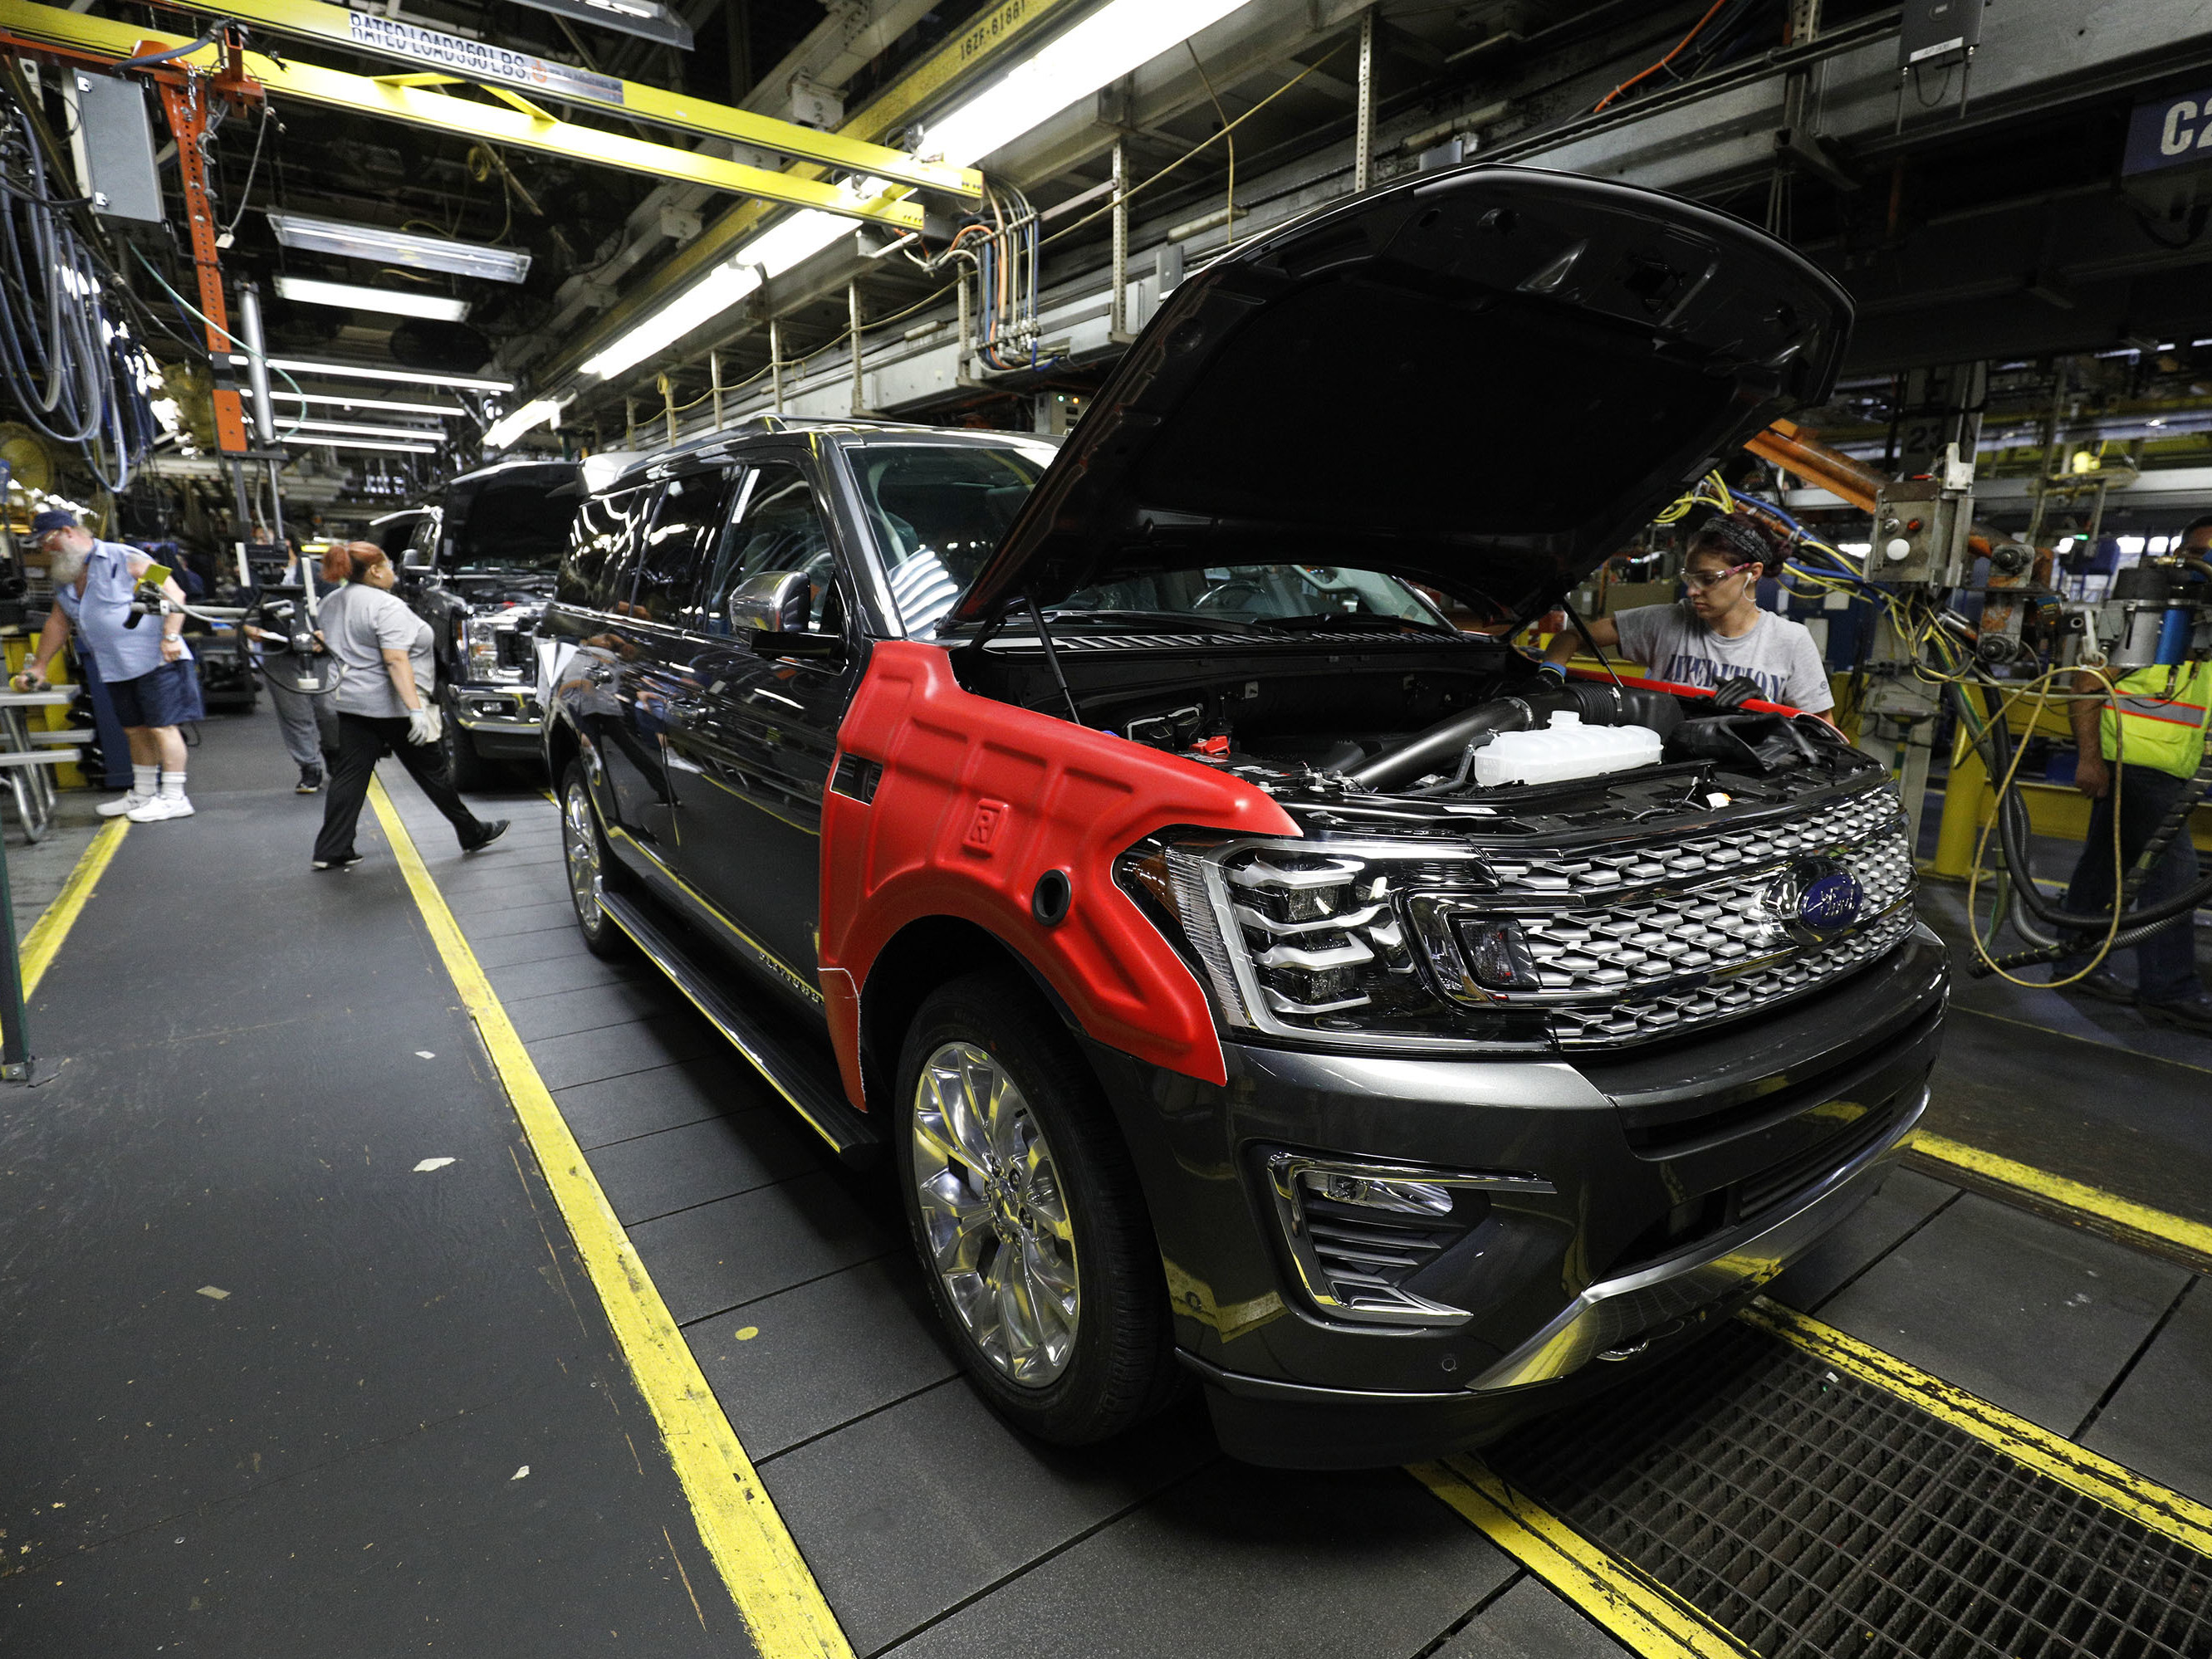 Auto Industry Healthy Enough To Withstand Next Downturn, Analysts Say